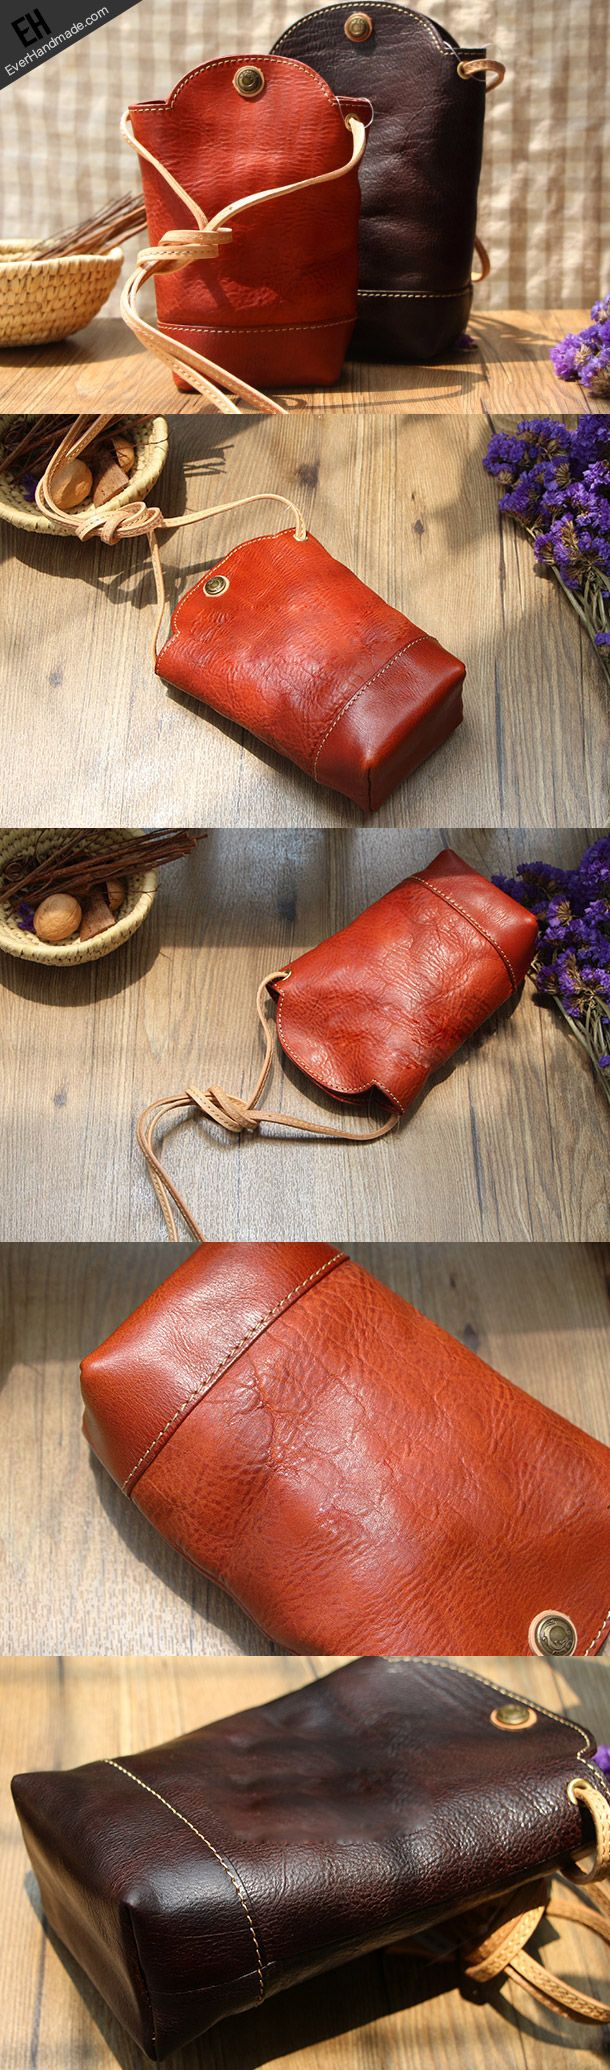 Handmade Leather bag for women leather phone bag shoulder bag